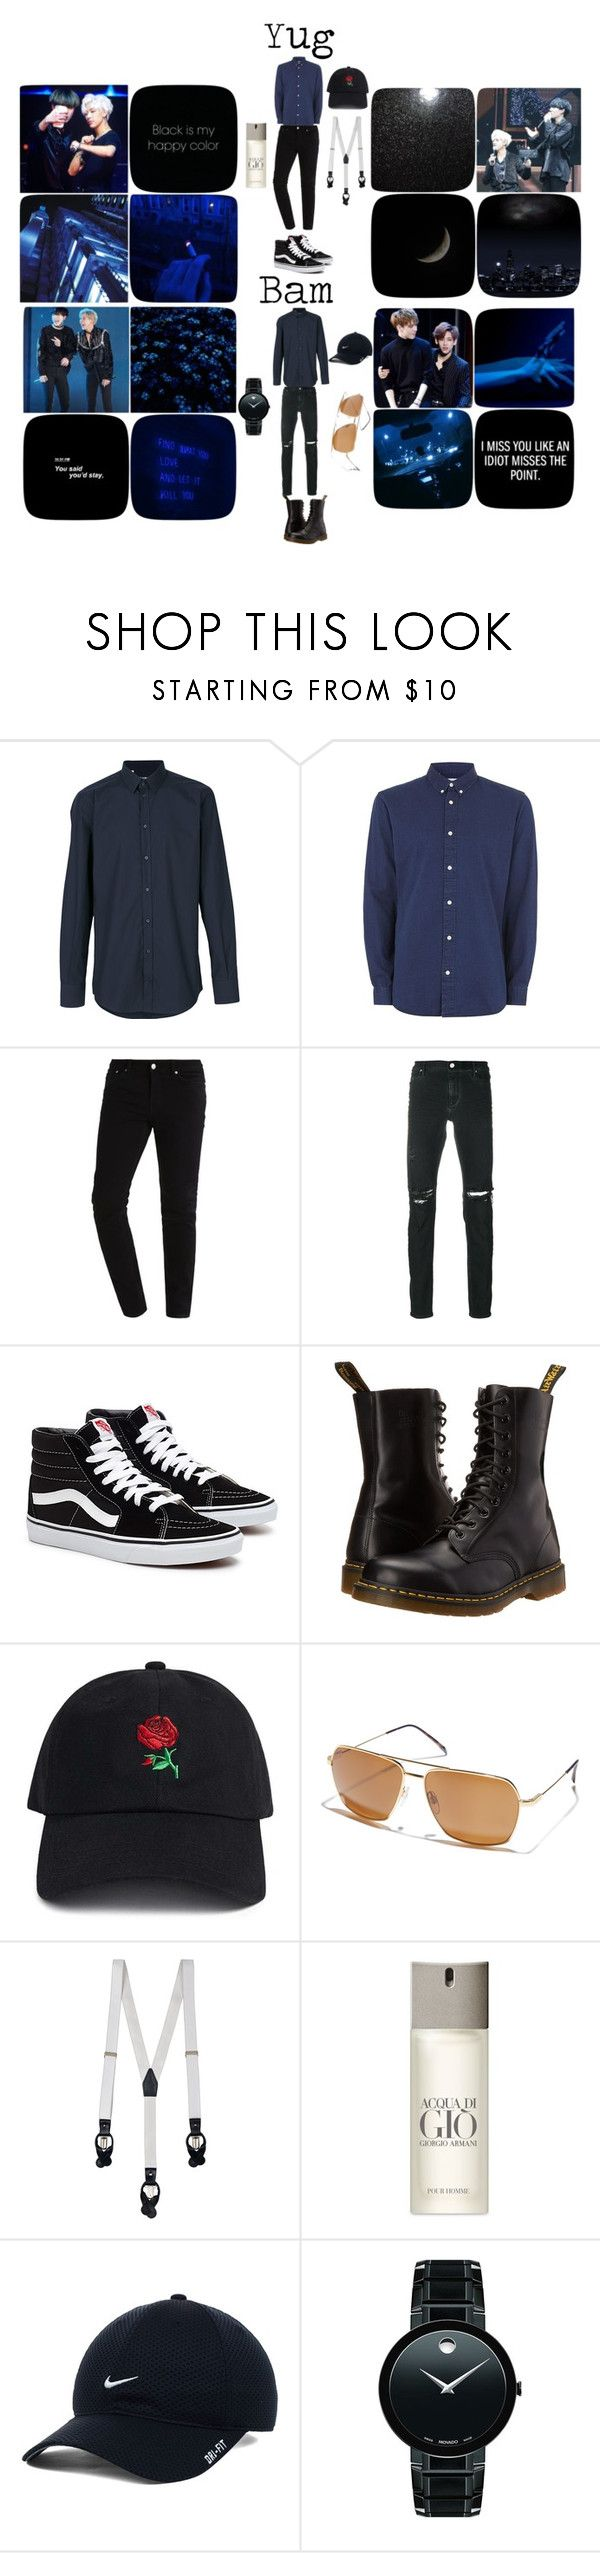 """yugbam"" by delarosamelody15 ❤ liked on Polyvore featuring Dolce&Gabbana, Topman, RtA, Dr. Martens, 21 Men, Electric, La Perla, Giorgio Armani, NIKE and Movado"